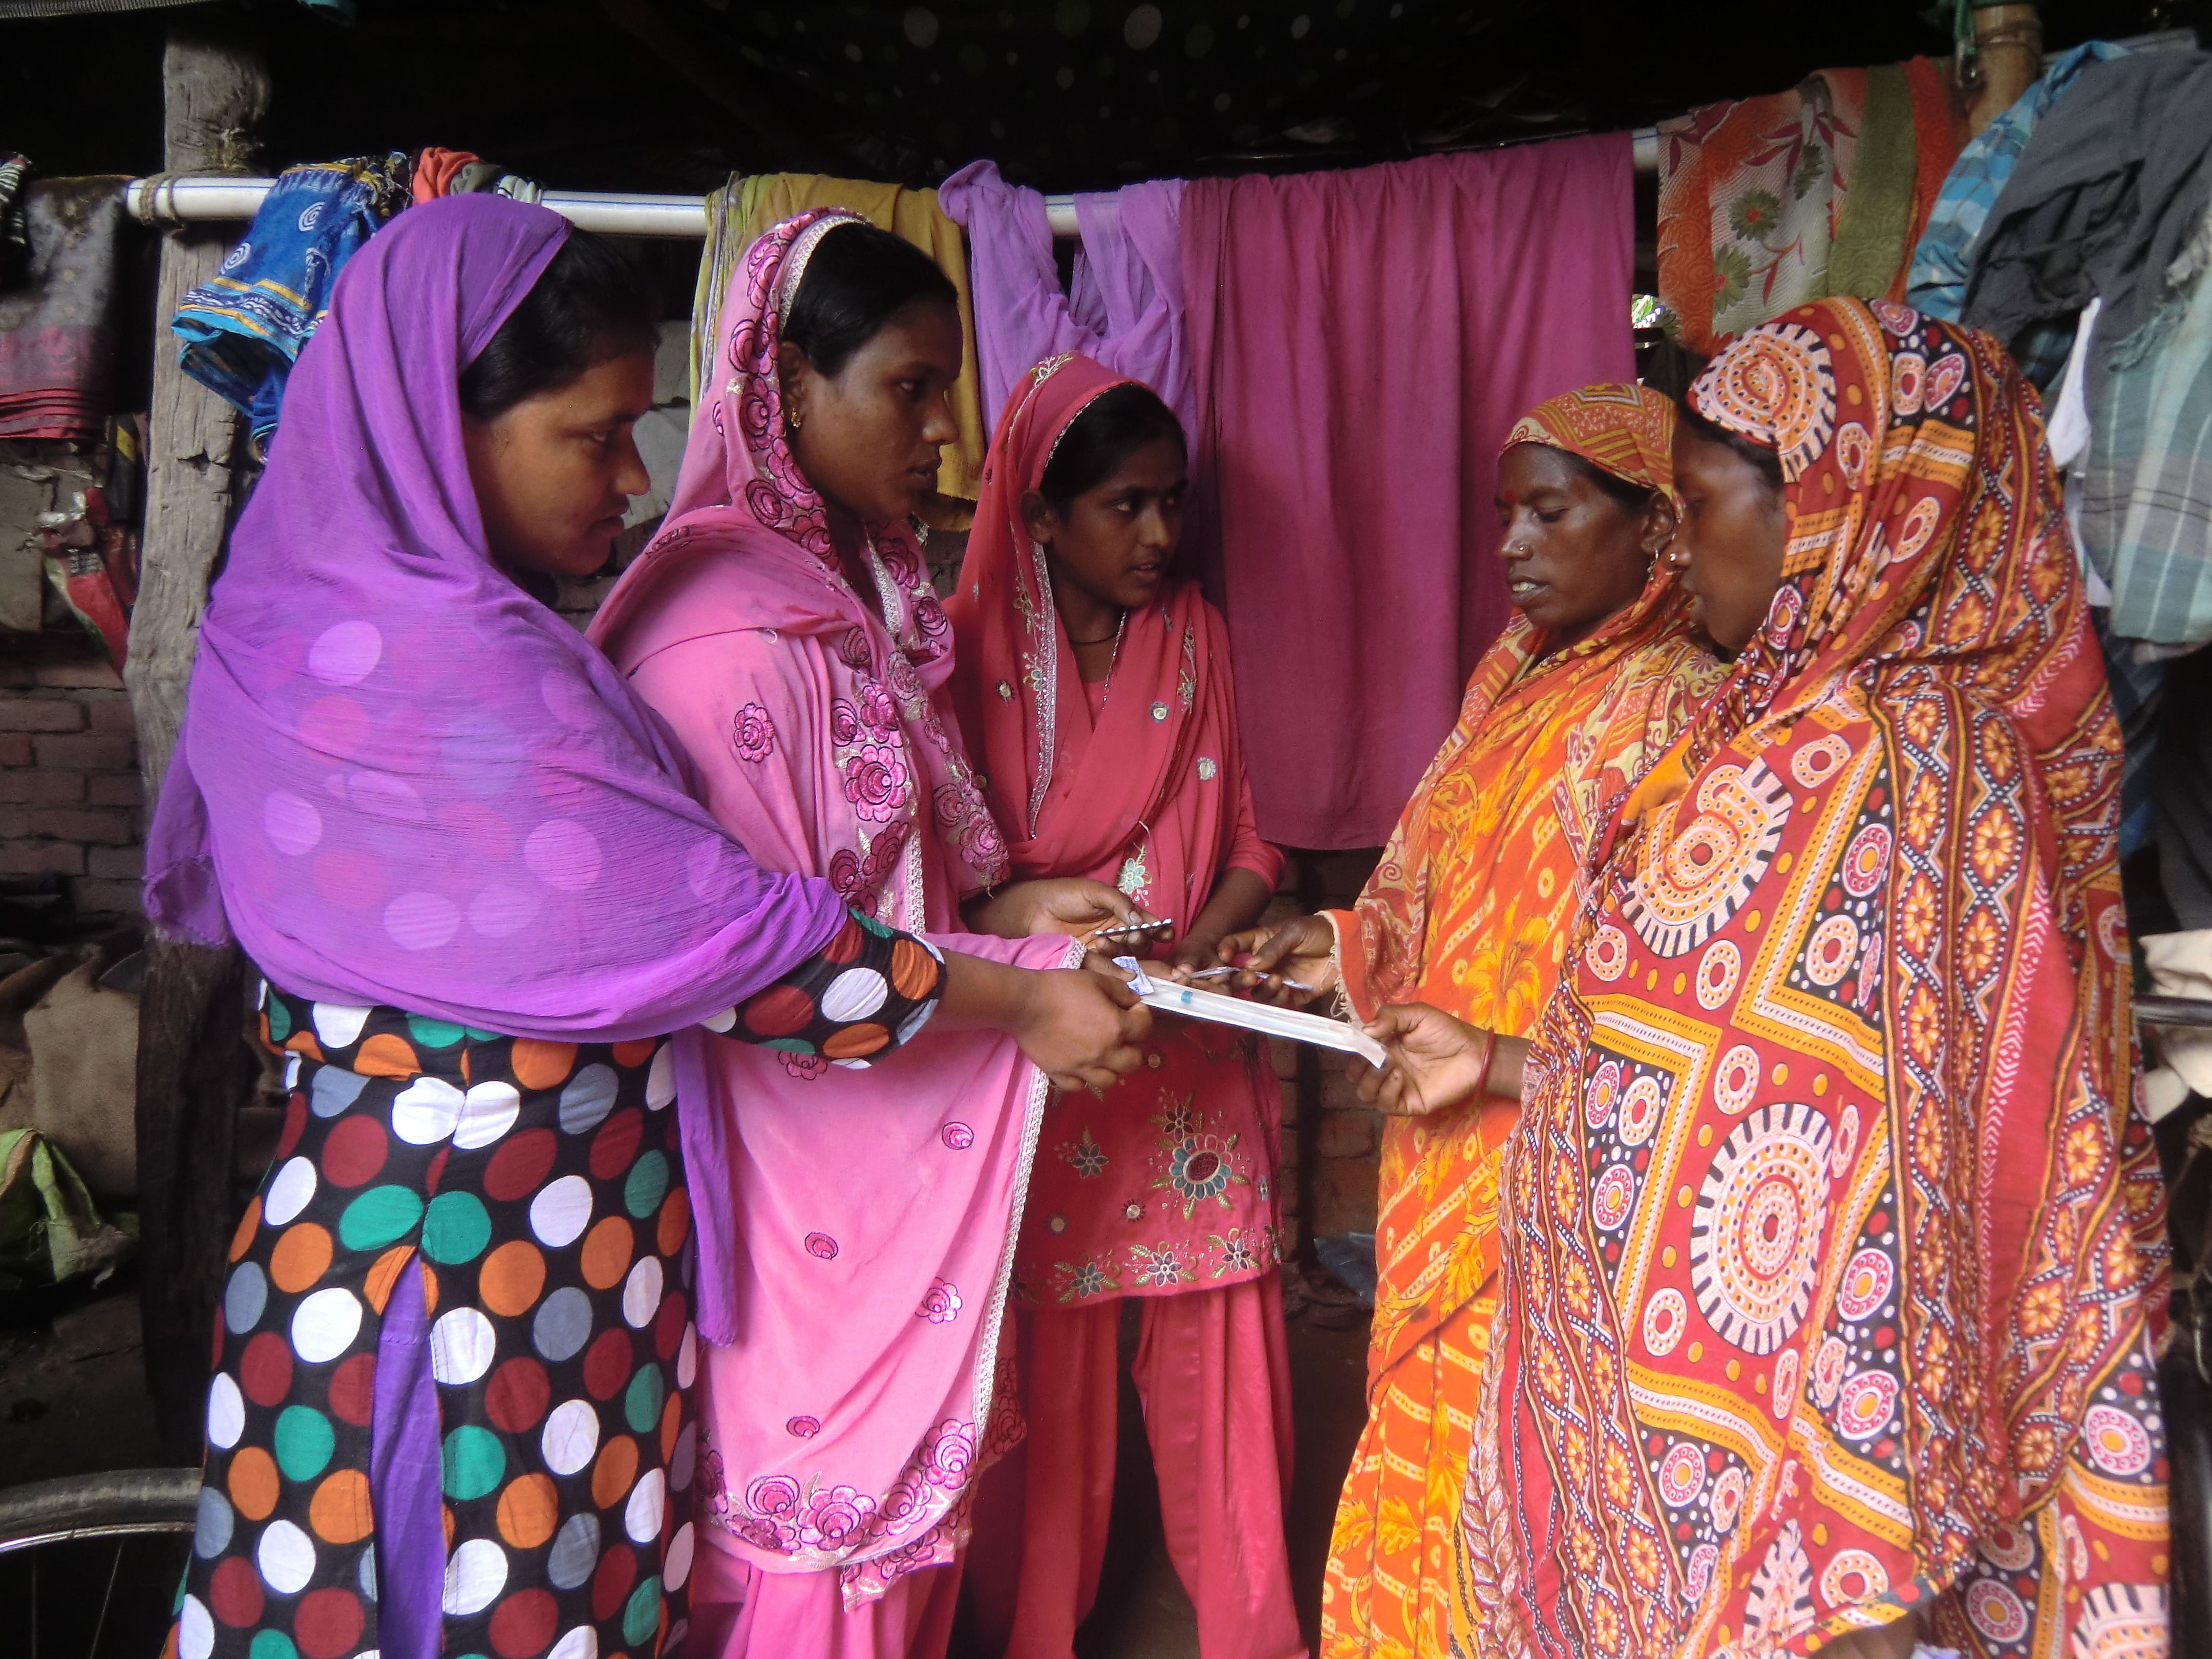 Without inhibition, the Kishori group members of Nooniya Basti interact with older women showing them samples of contraceptive pills, Copper T and condoms and telling them about the merits of keeping at a five-year gap between children. (Credit: Ajitha Menon\WFS)